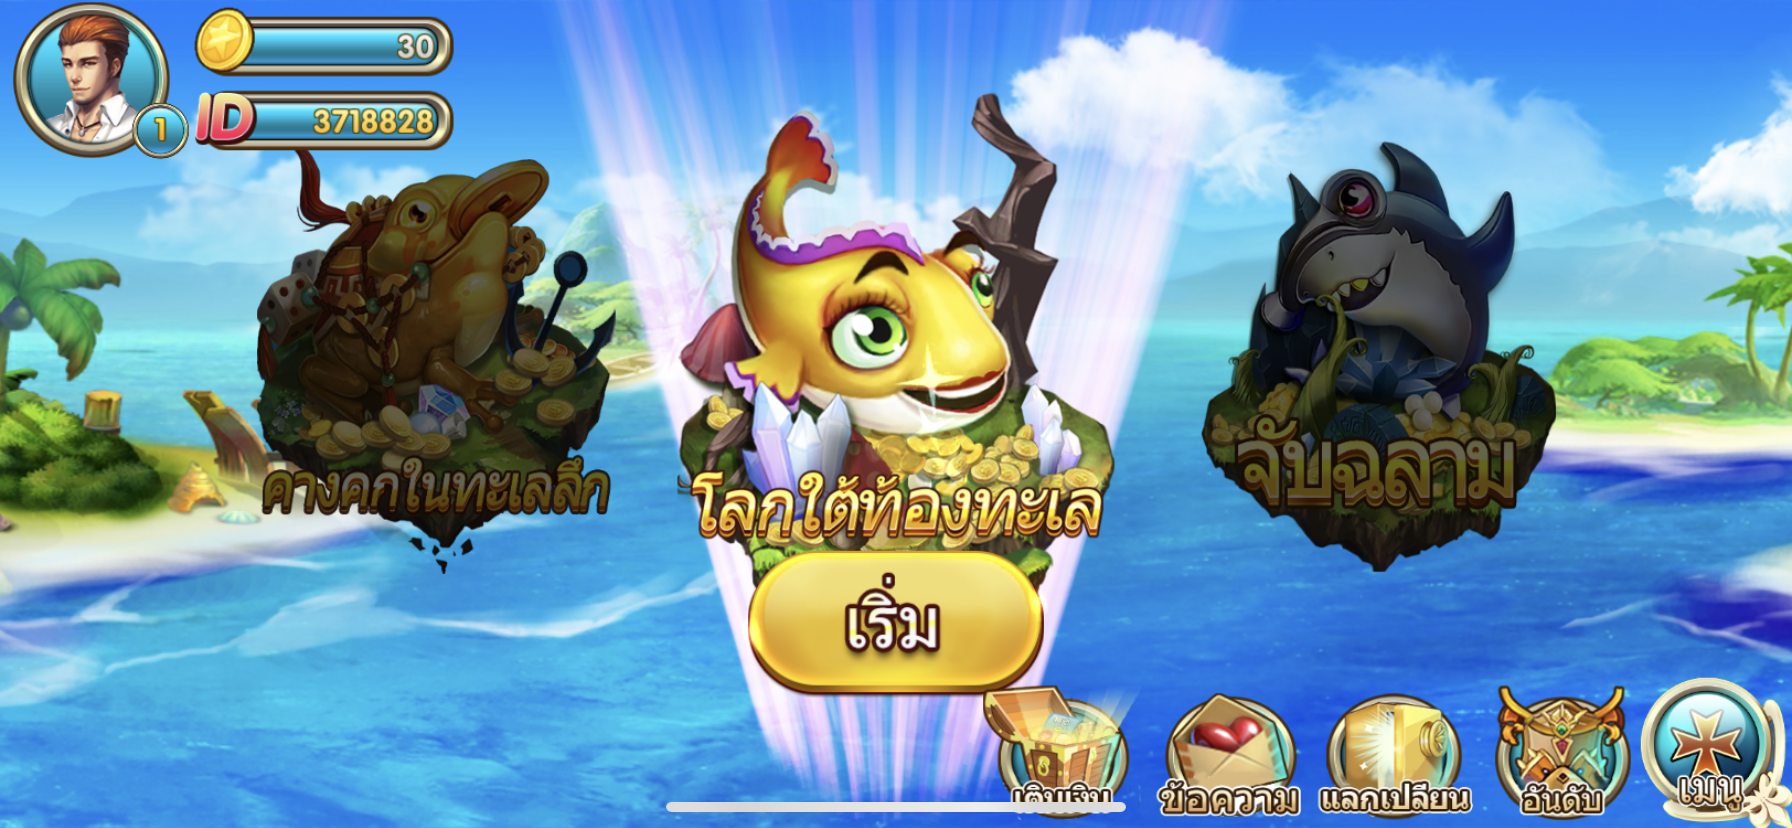 How to play fish shooting game?